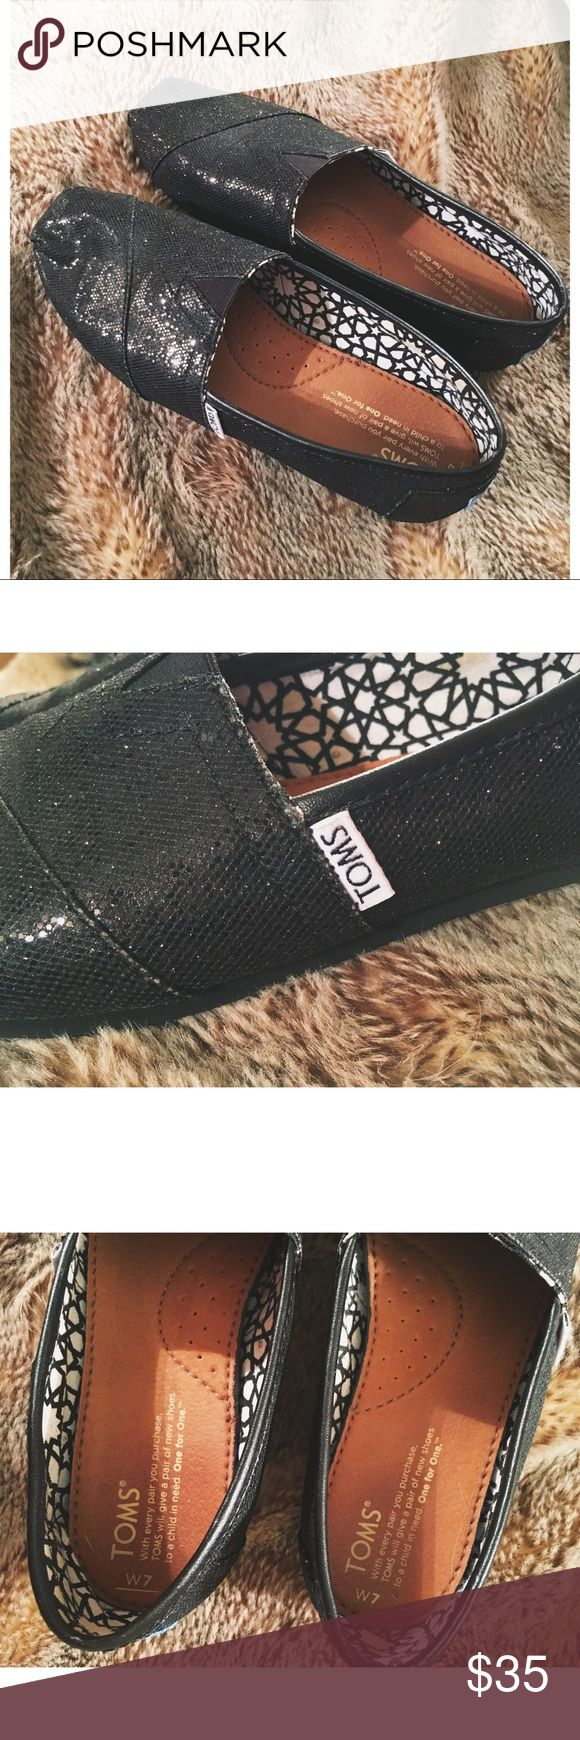 Black Glitter TOMS Worn only a few times! Never got into the trend too much so they just sat in my closet for a couple of years ! Size women's 7! Toms Shoes Flats & Loafers